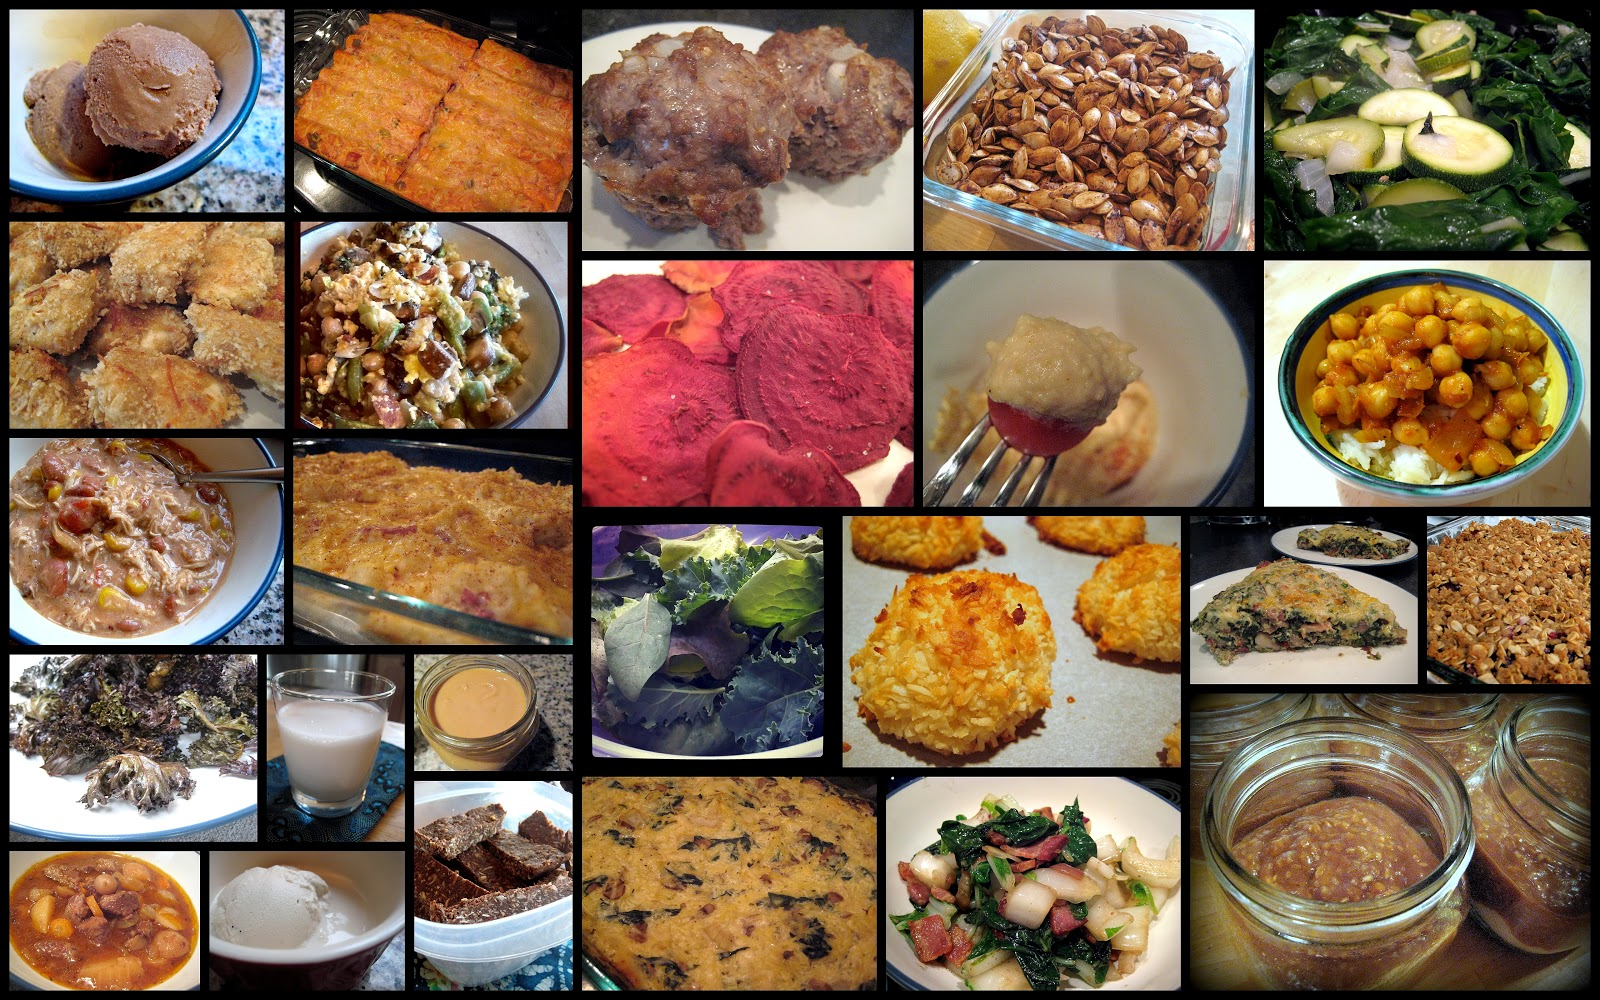 Anktangle a week of whole foods meals recipes today im sharing a detailed week long meal plan complete with recipes for many of the dishes featured here forumfinder Images